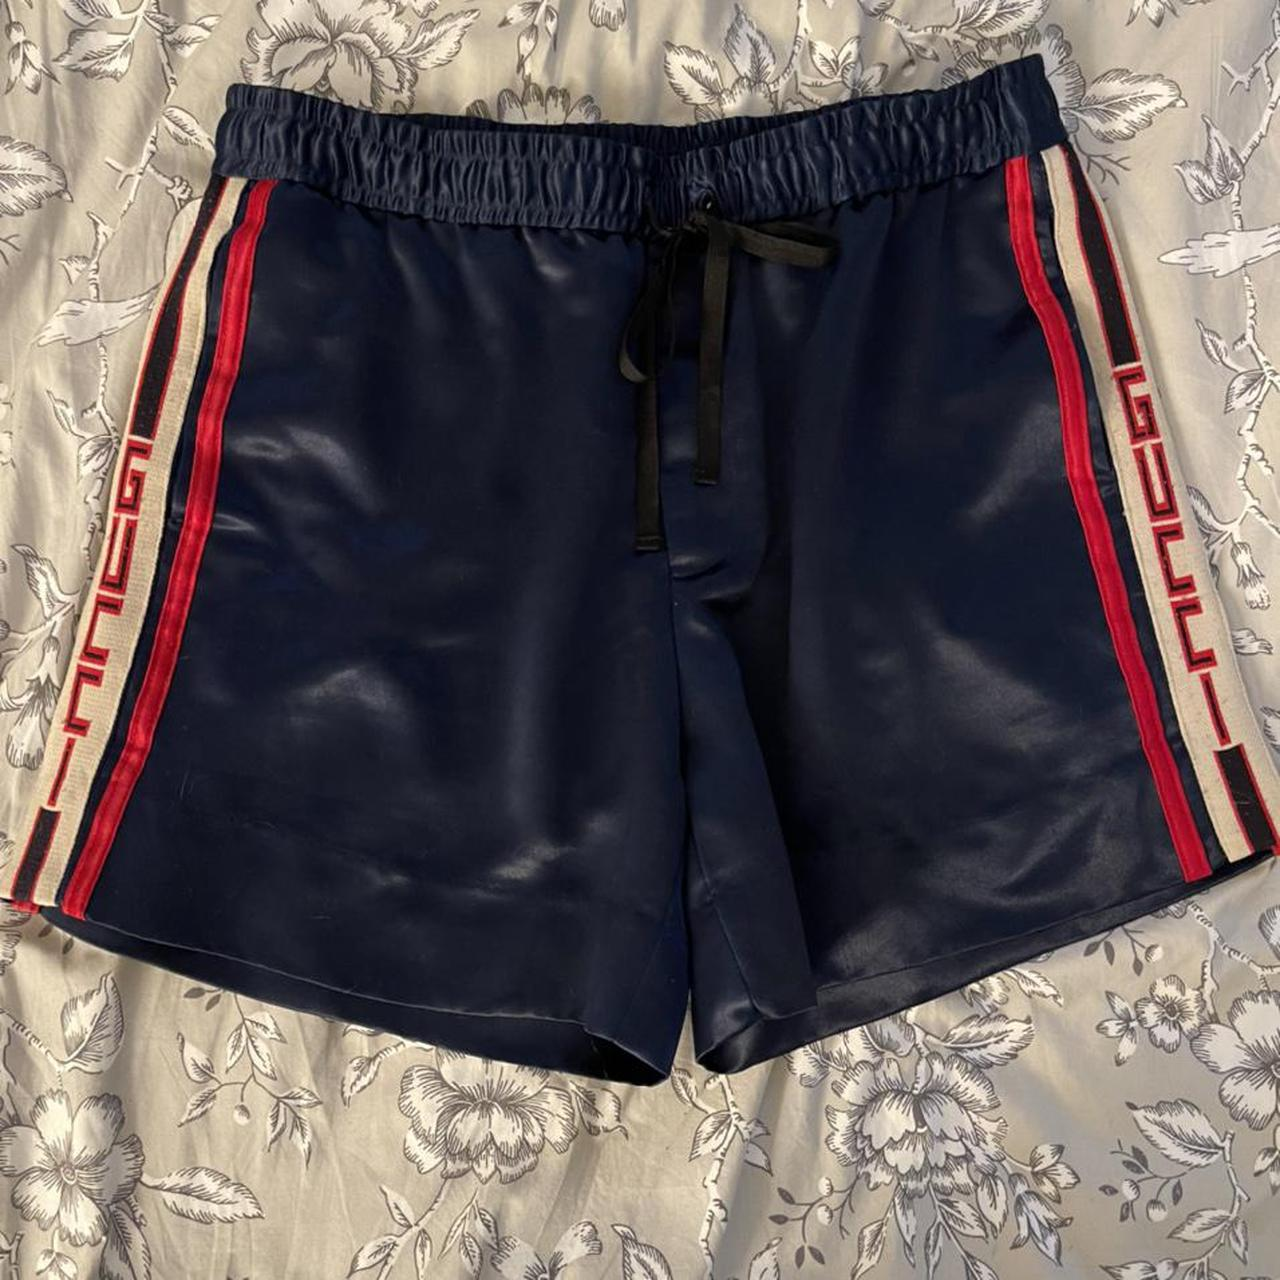 Product Image 1 - Pre-owned Gucci technical shorts in